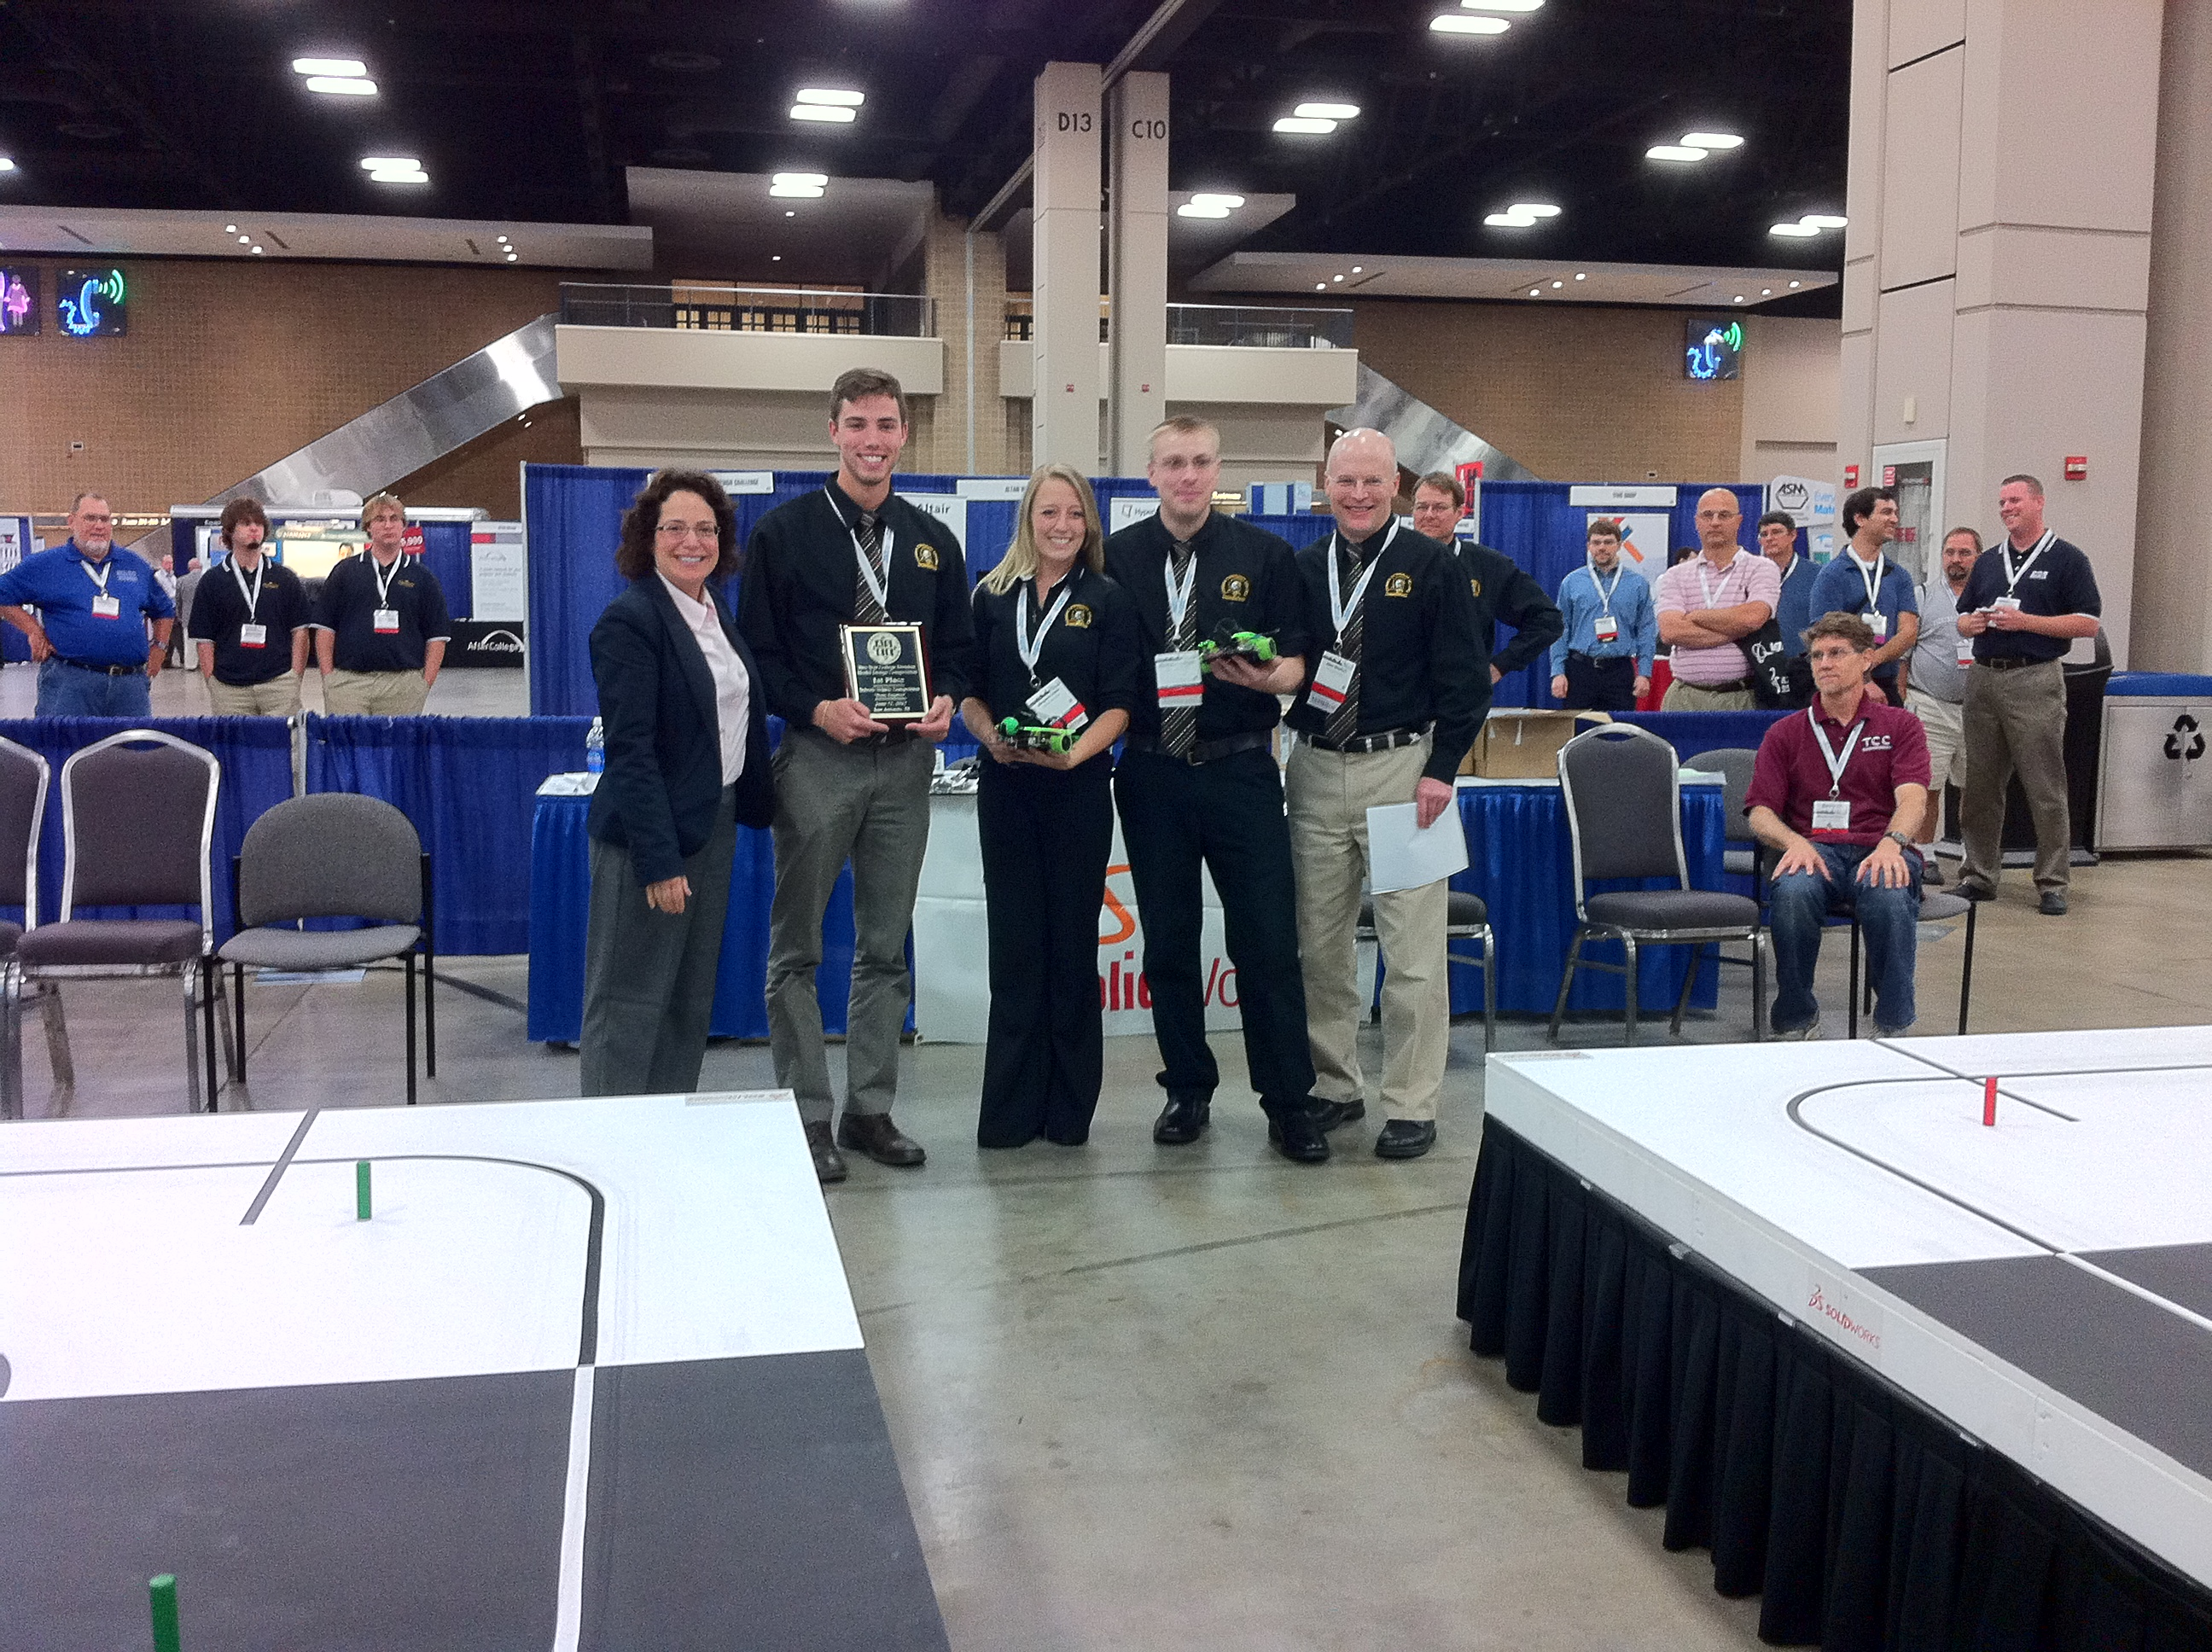 ASEE Contests in Review – Sponsored by SolidWorks